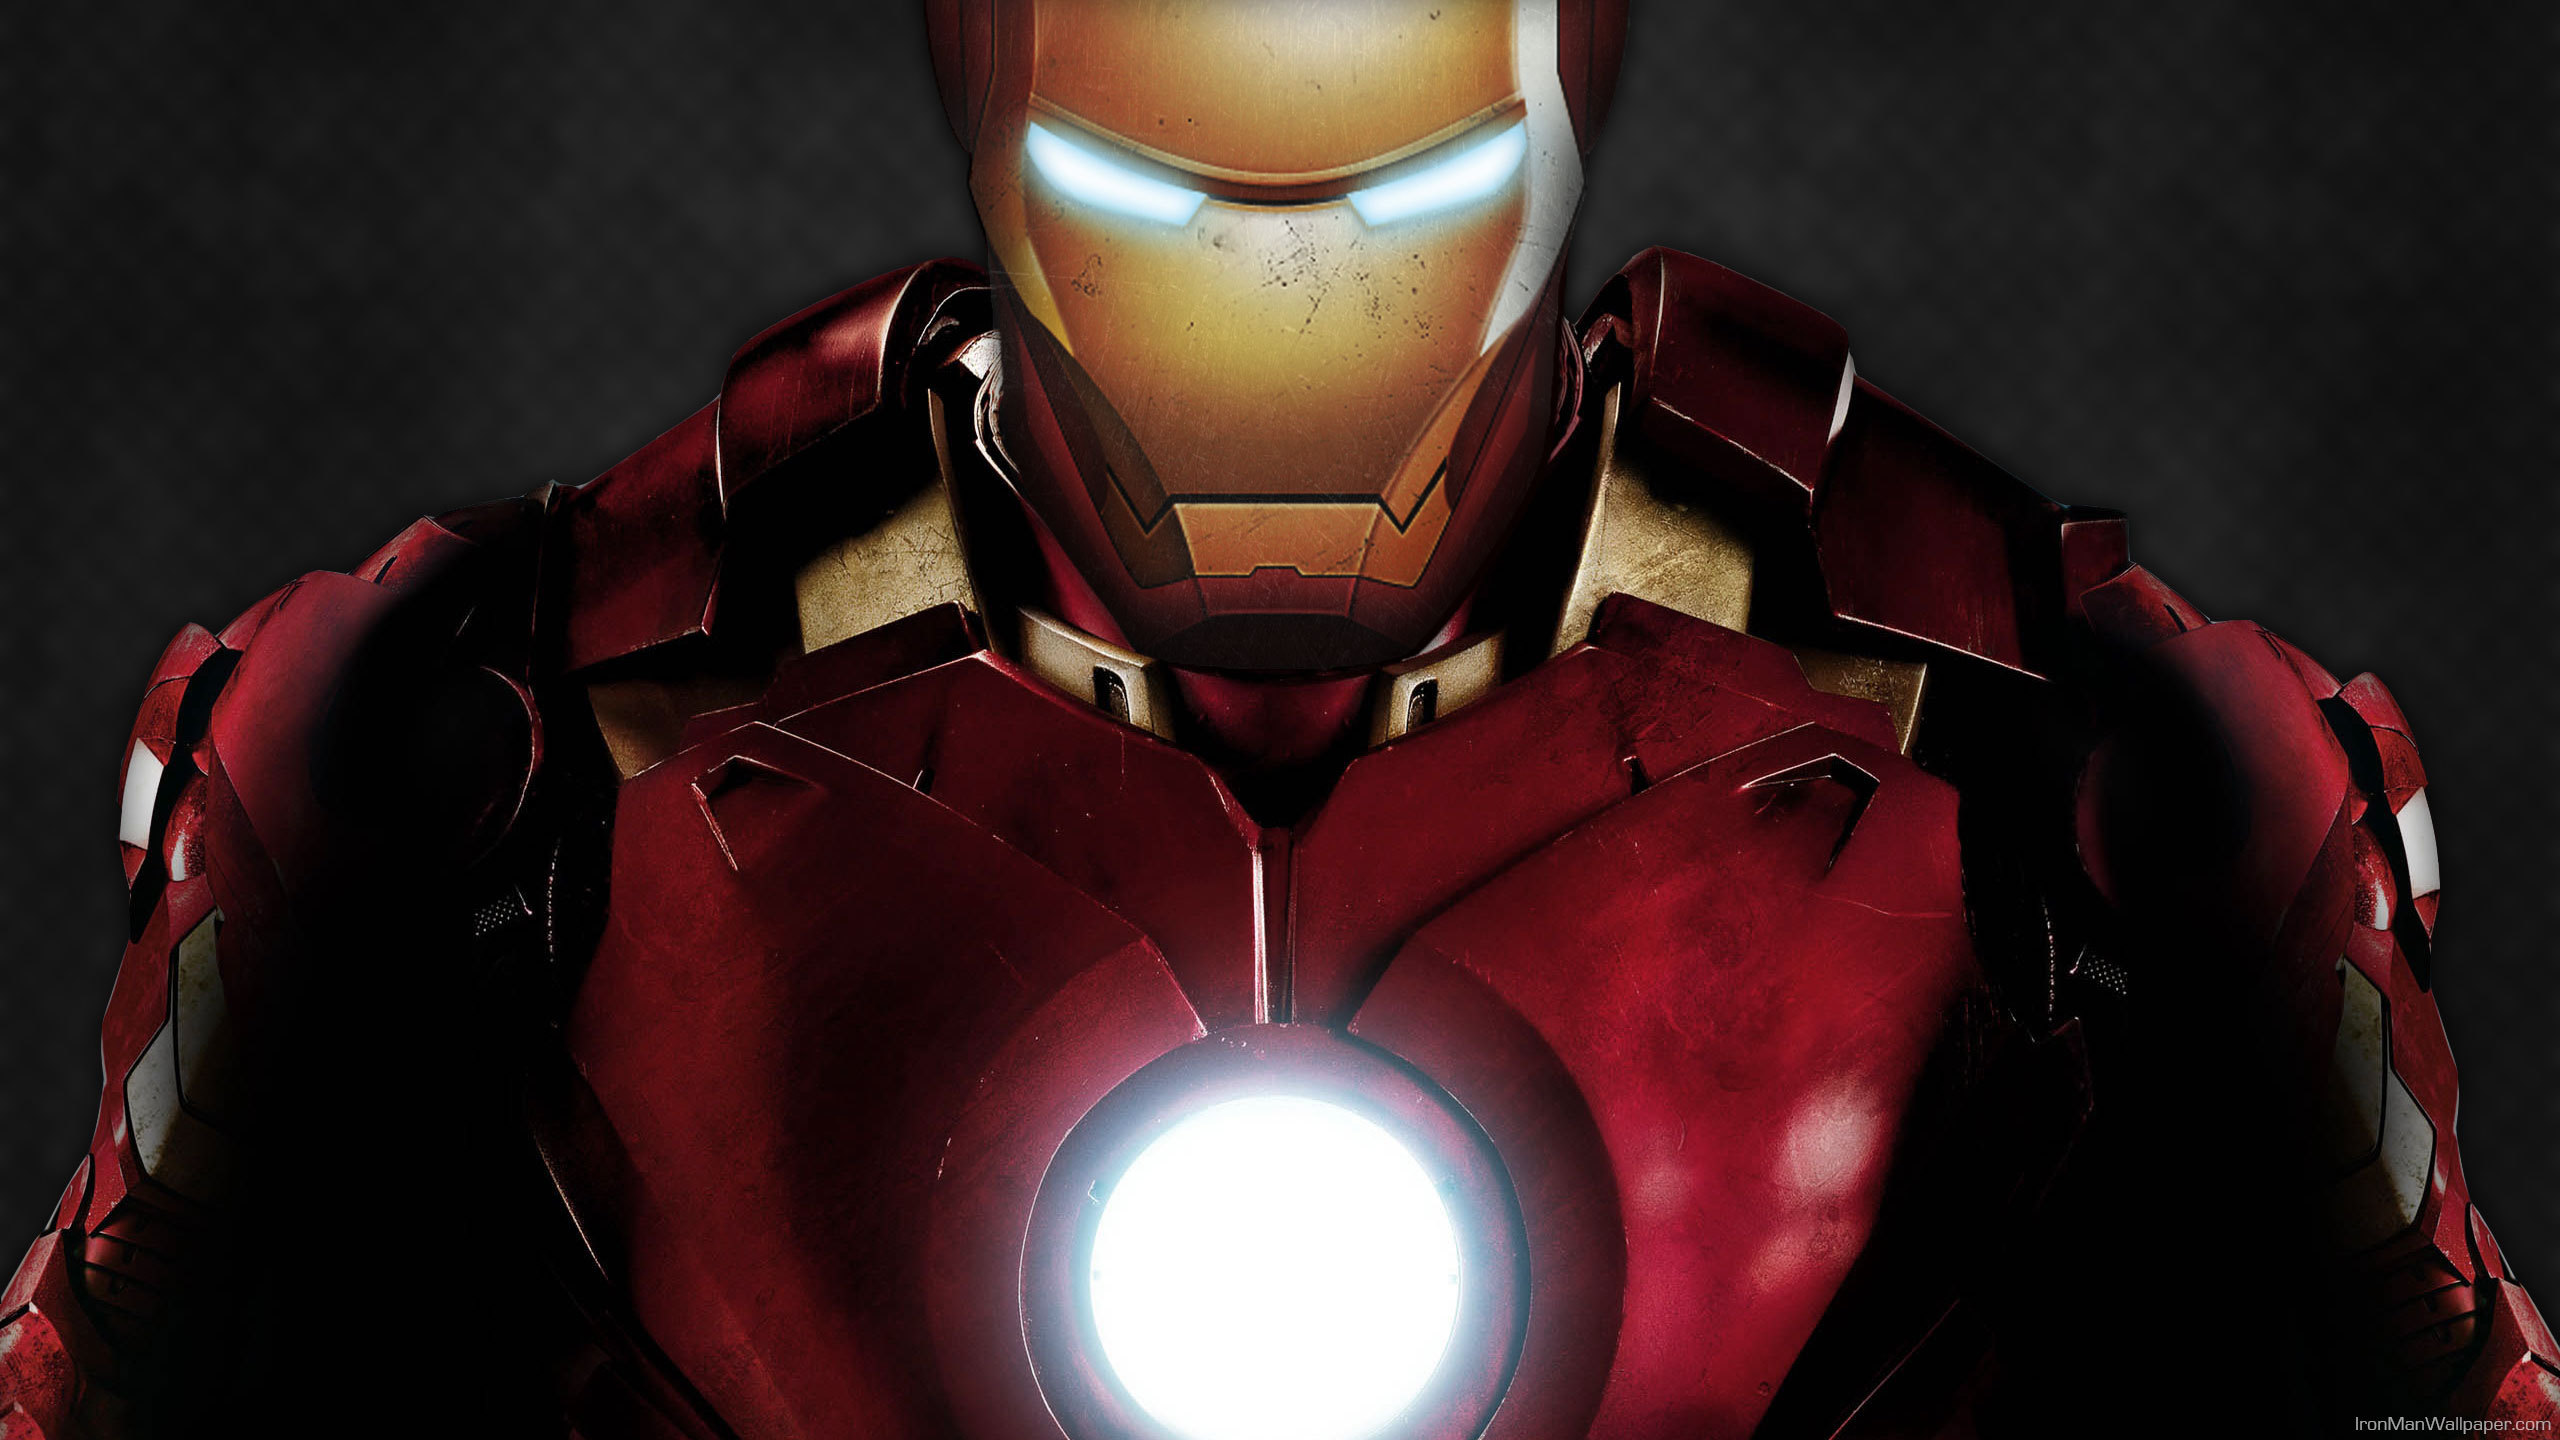 Iron man wallpapers images photos pictures backgrounds - Iron man wallpaper anime ...